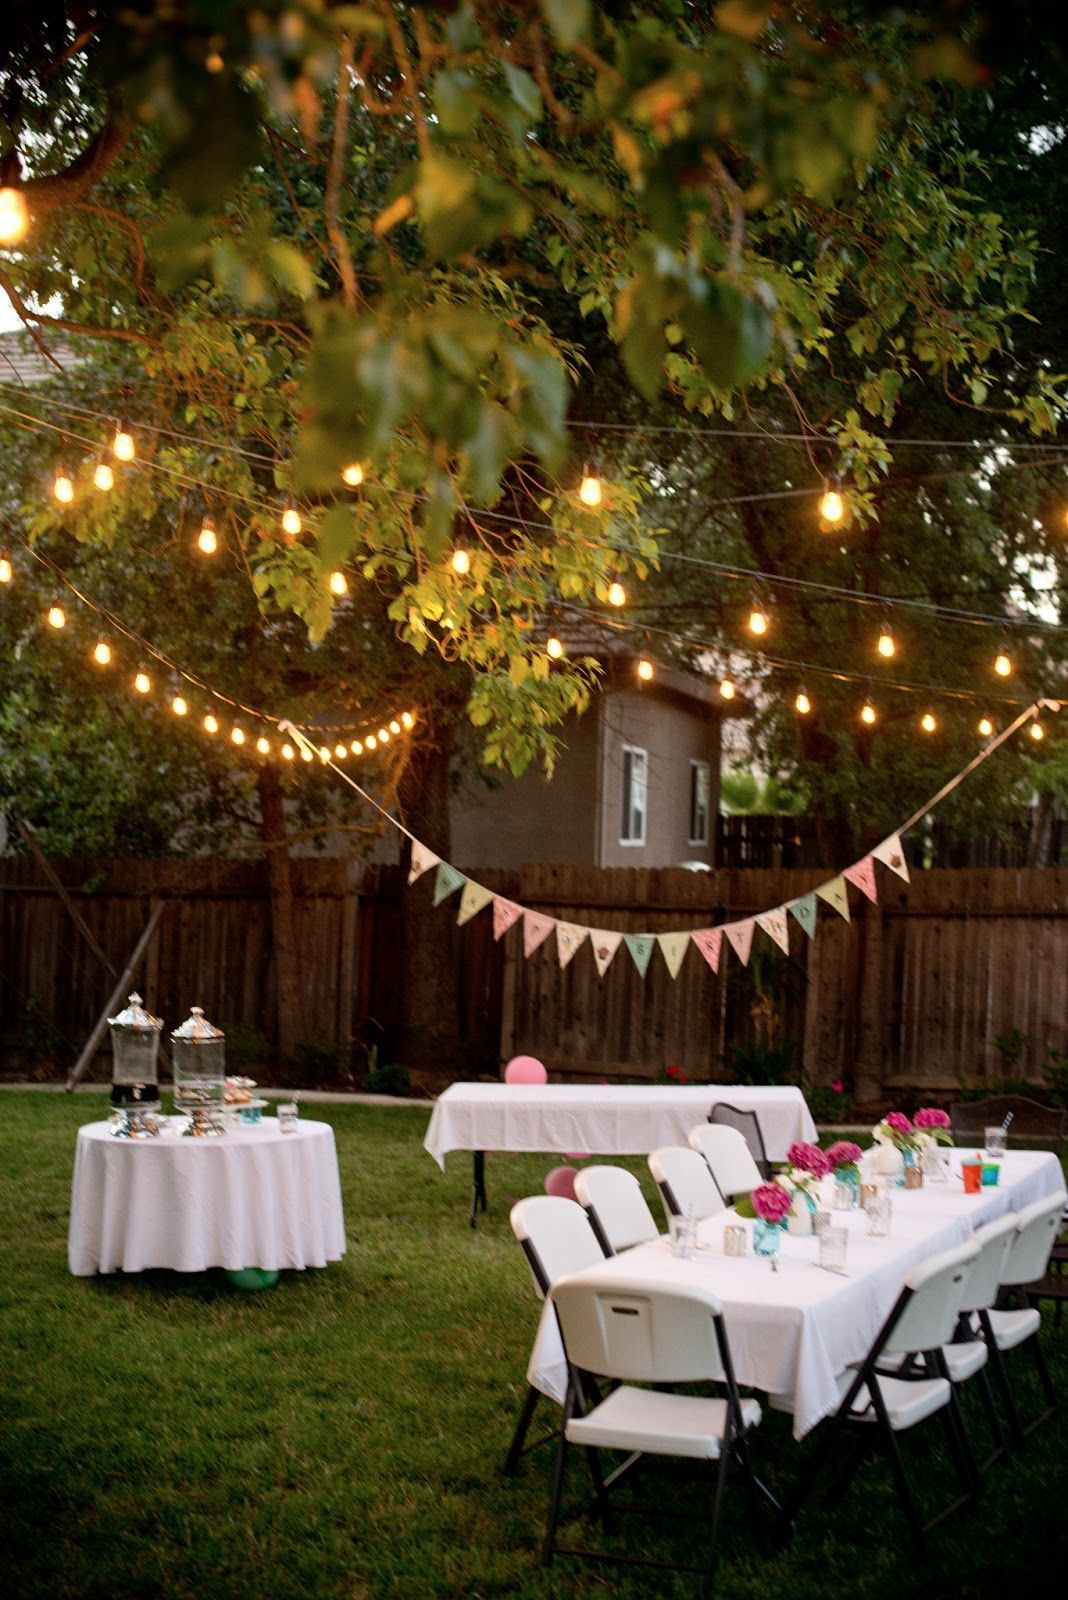 20 Ideas How To Build Backyard Engagement Party Some Of The Coolest Tricks Simphome Backyard Birthday Parties Outdoor Graduation Parties Backyard Party Decorations Diy backyard engagement party